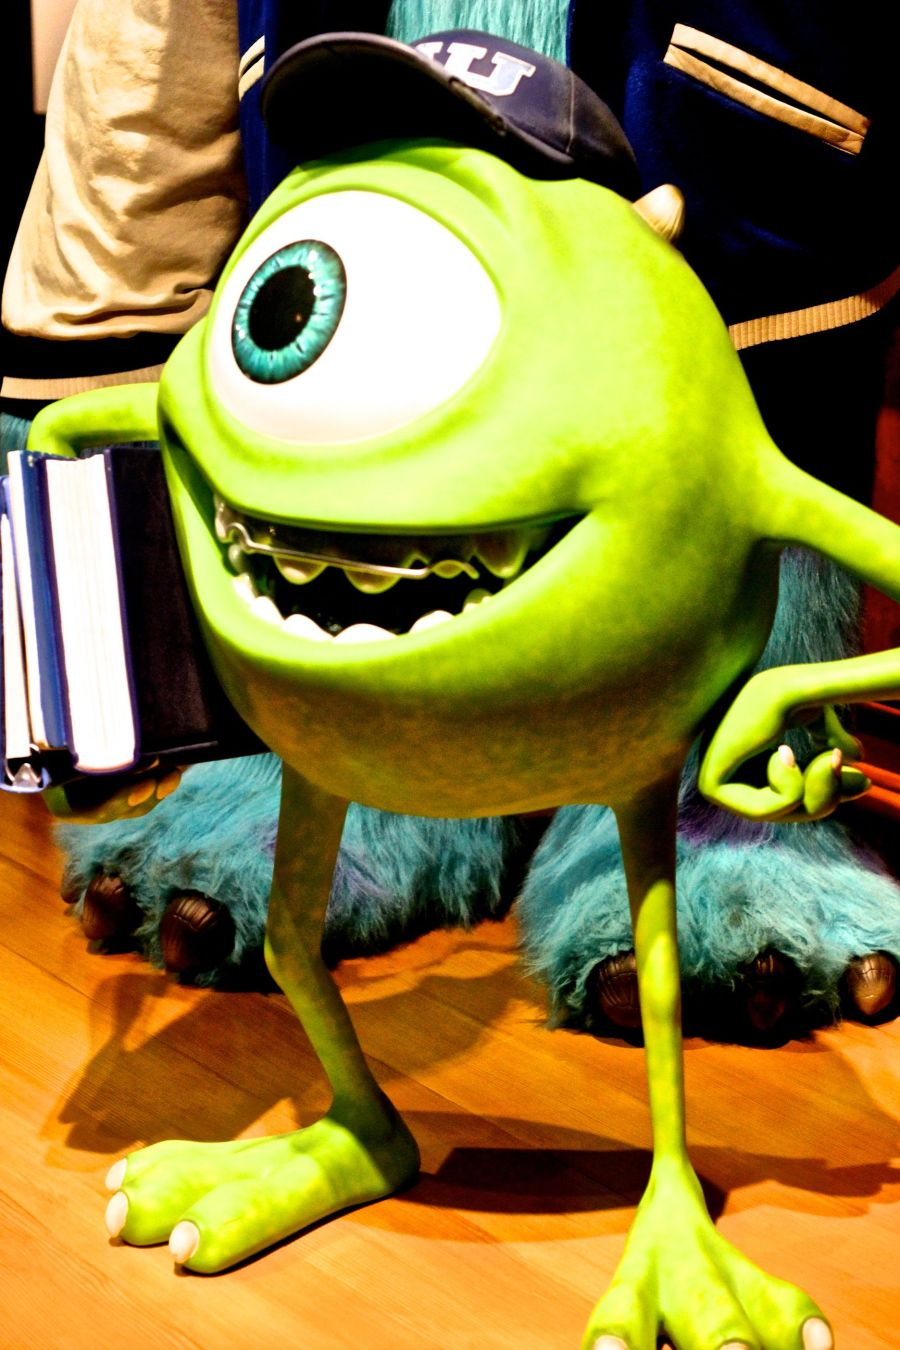 boston museum of fine arts pixar exhibit mike wazowski